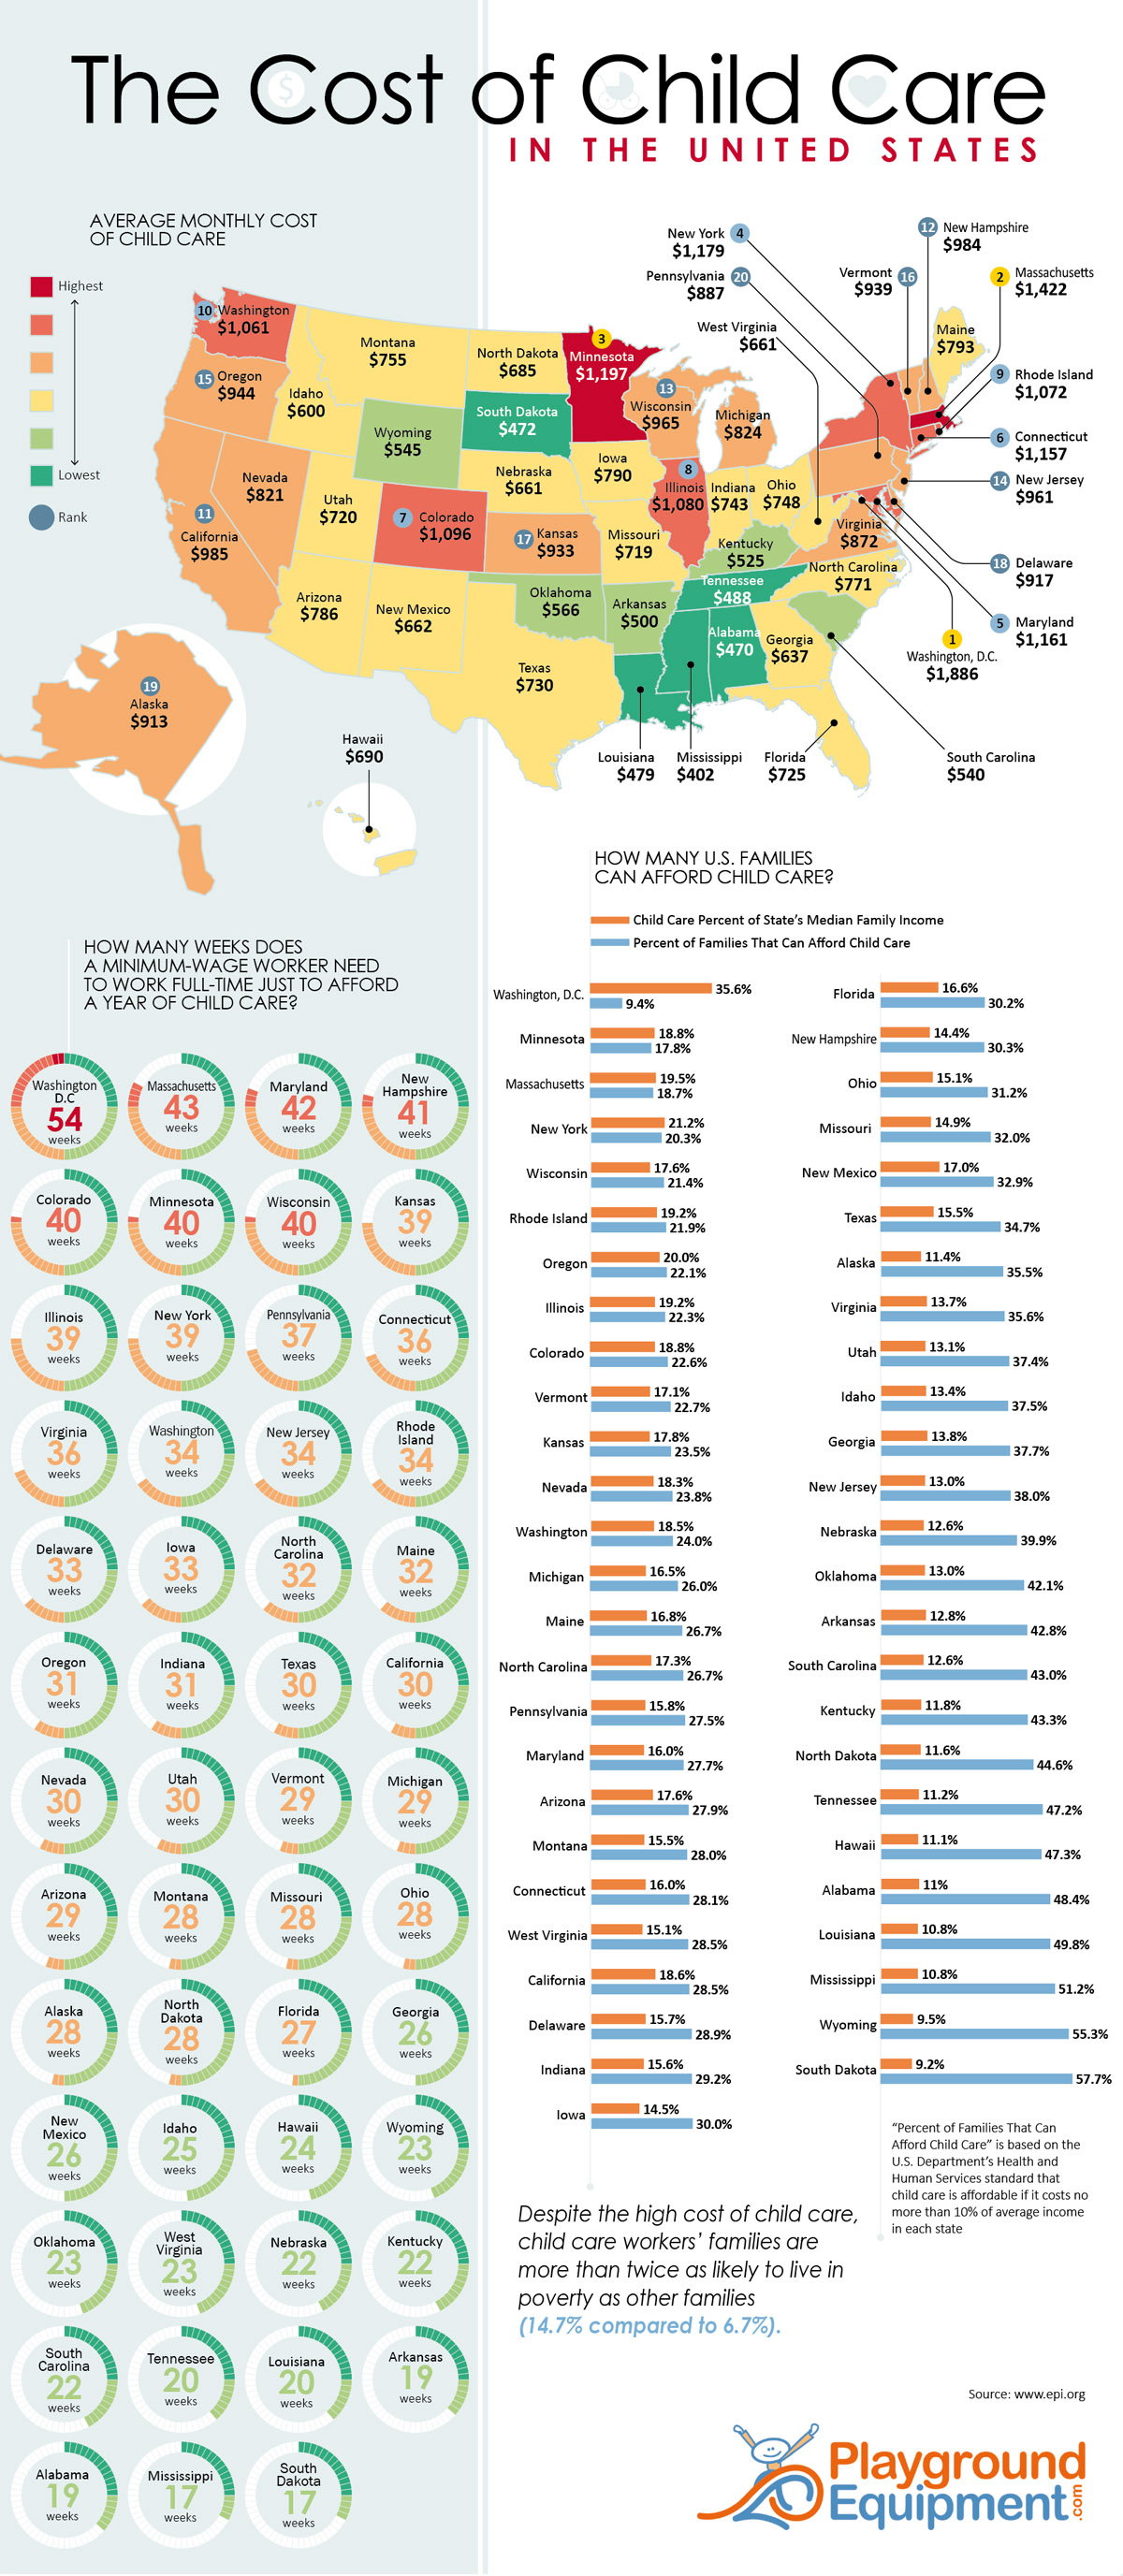 The Cost of Child Care in the United States